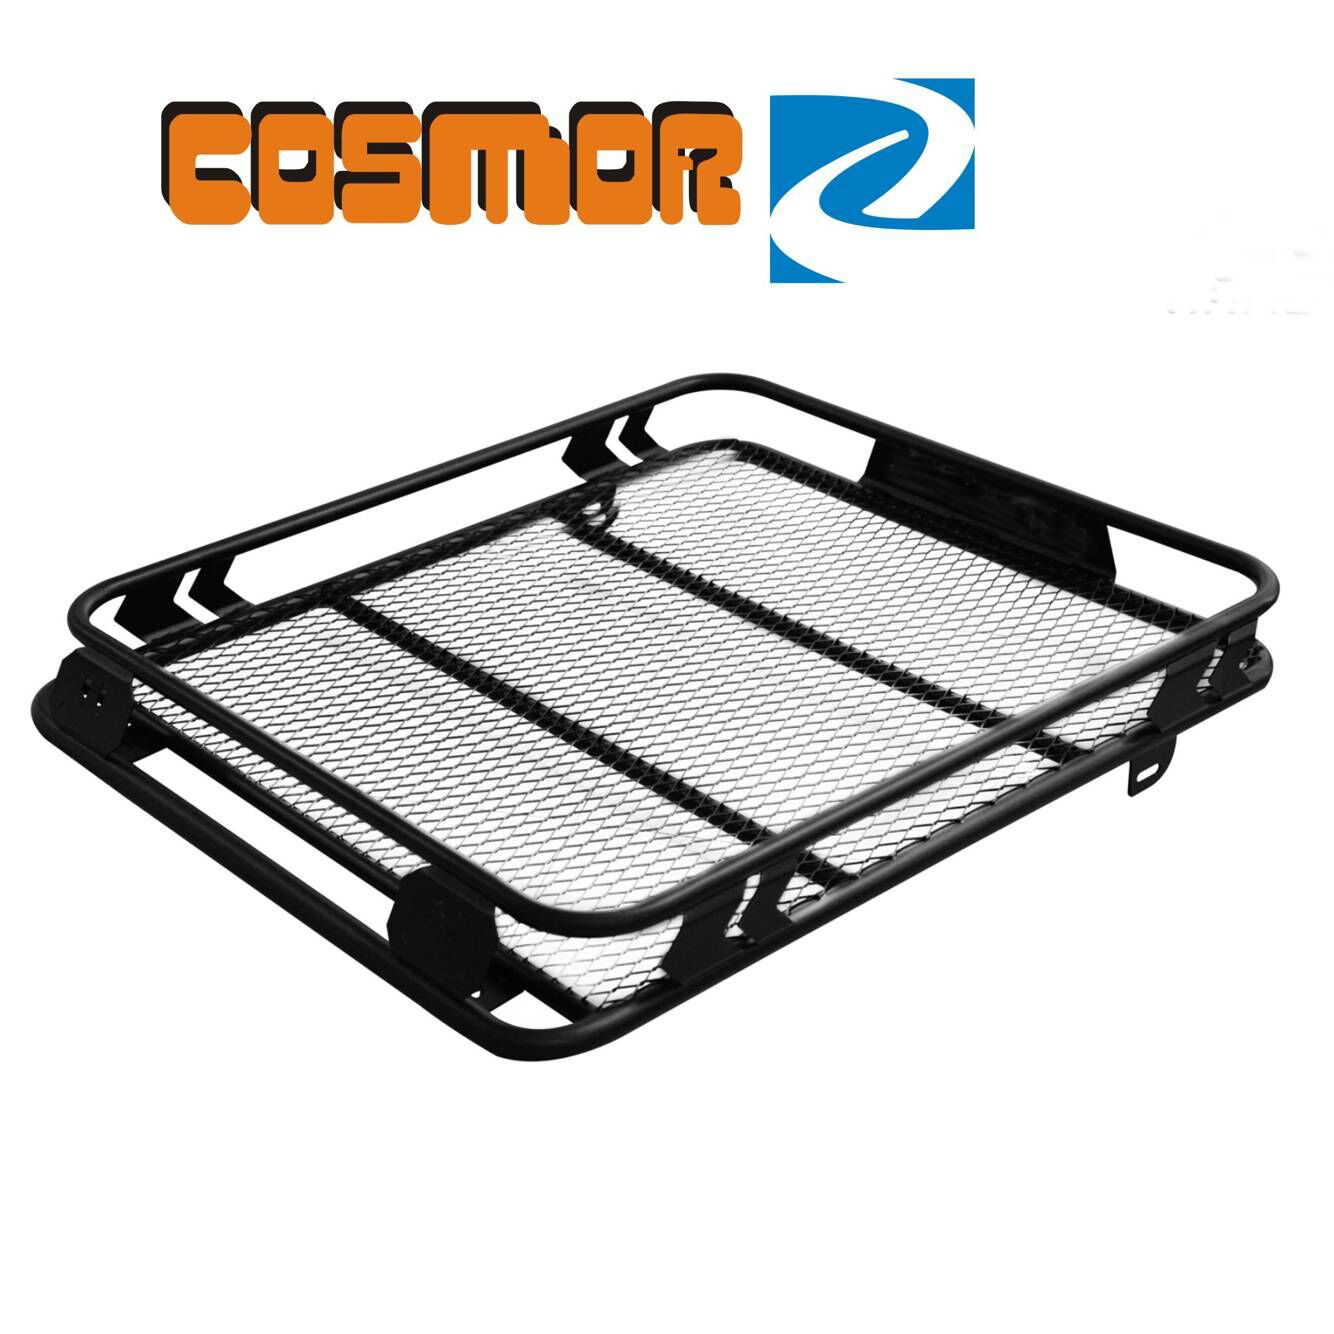 Pickup Truck Roof Top Cargo Rack for Ford 150